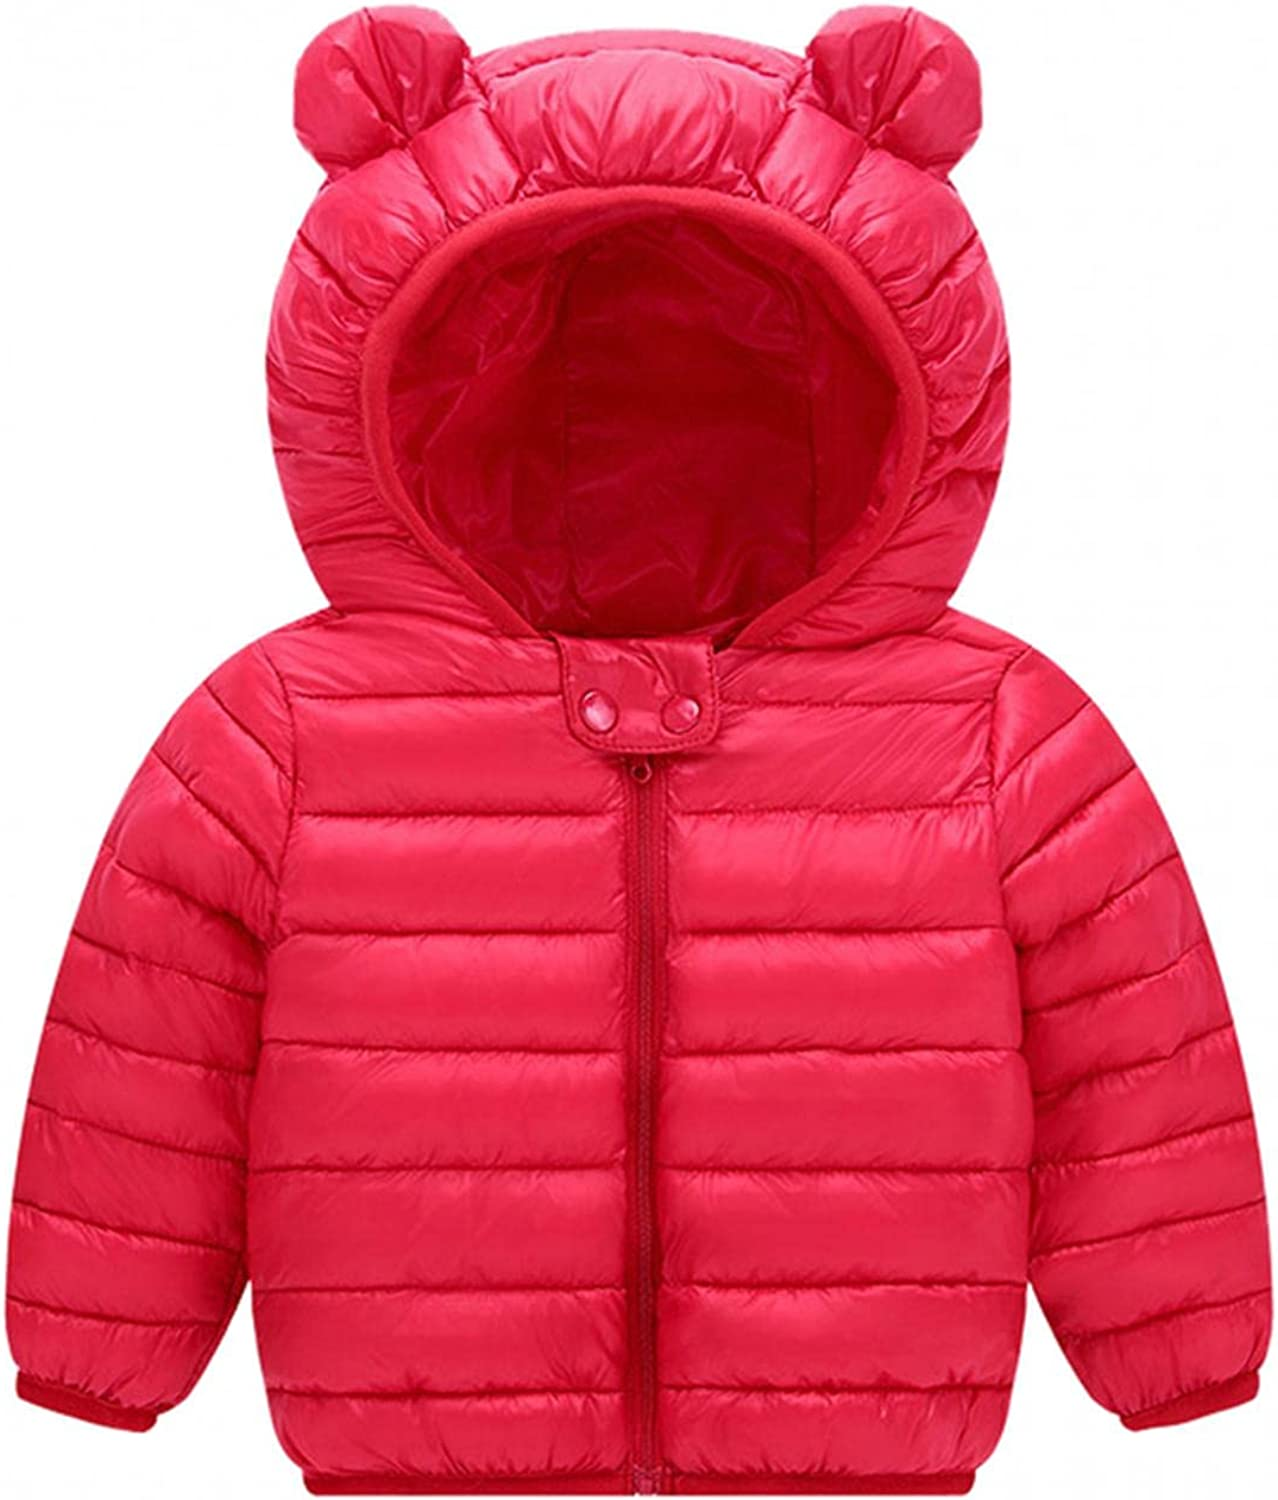 Toddler Kids Baby Grils Boys Hooded Jacket J Down Puffer Outdoor Free shipping anywhere in the New color nation